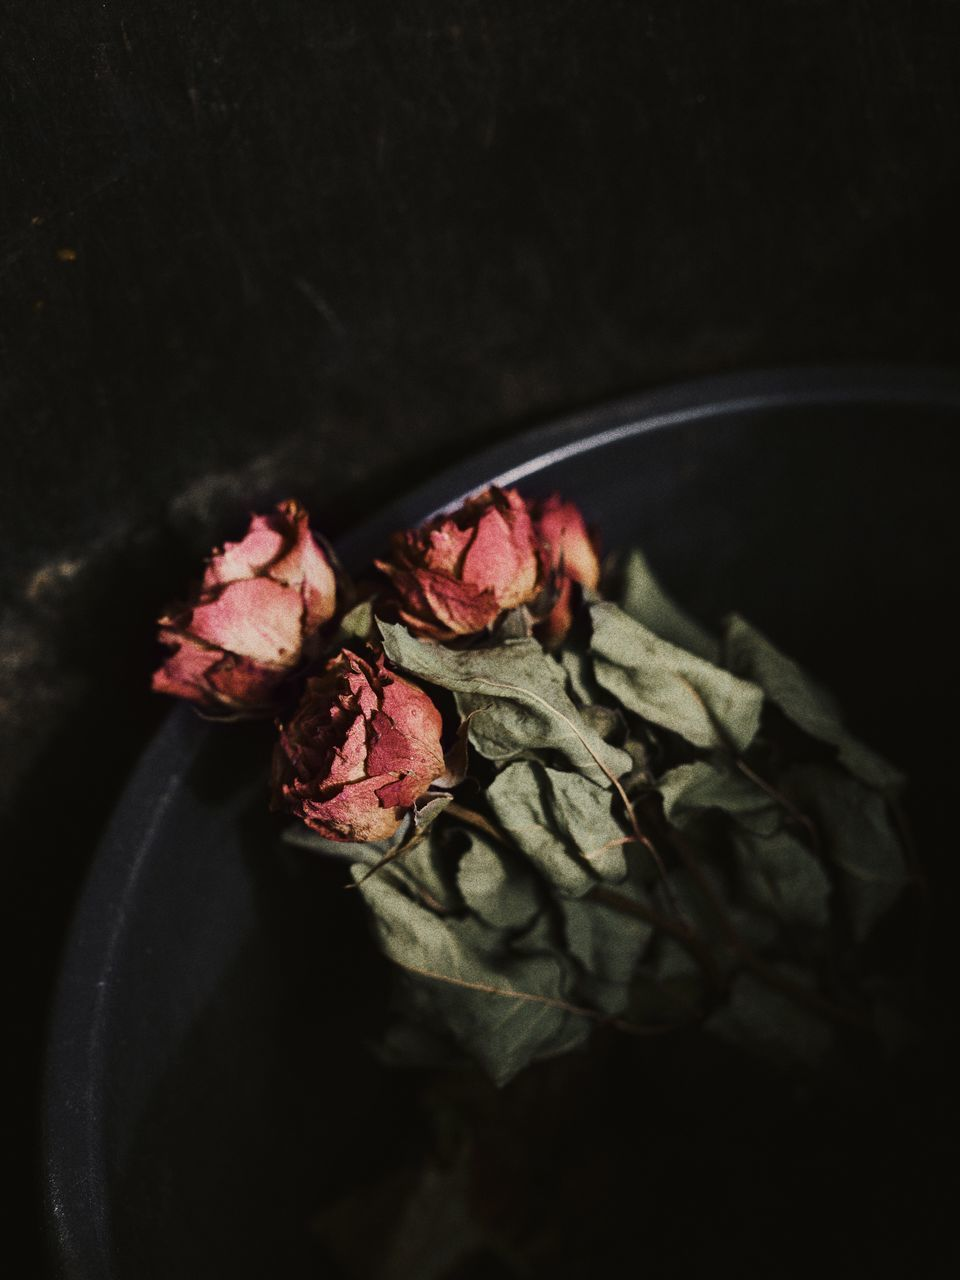 HIGH ANGLE VIEW OF ROSE IN BLACK BACKGROUND